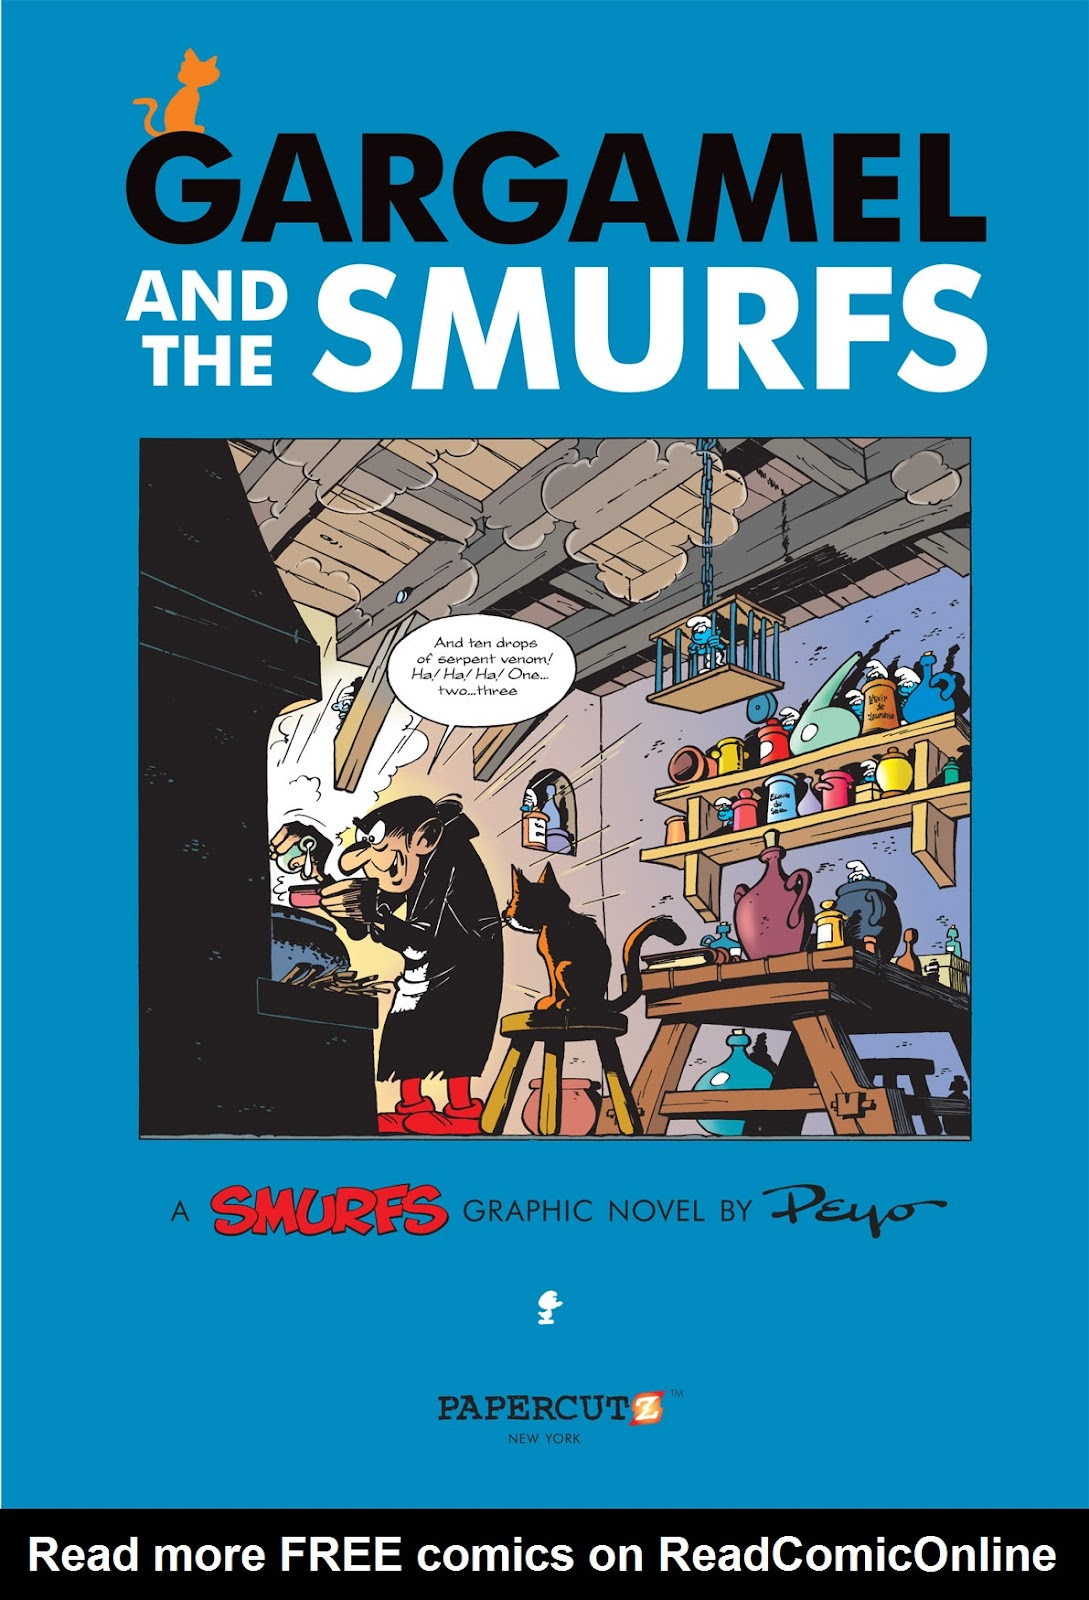 Read online The Smurfs comic -  Issue #9 - 3